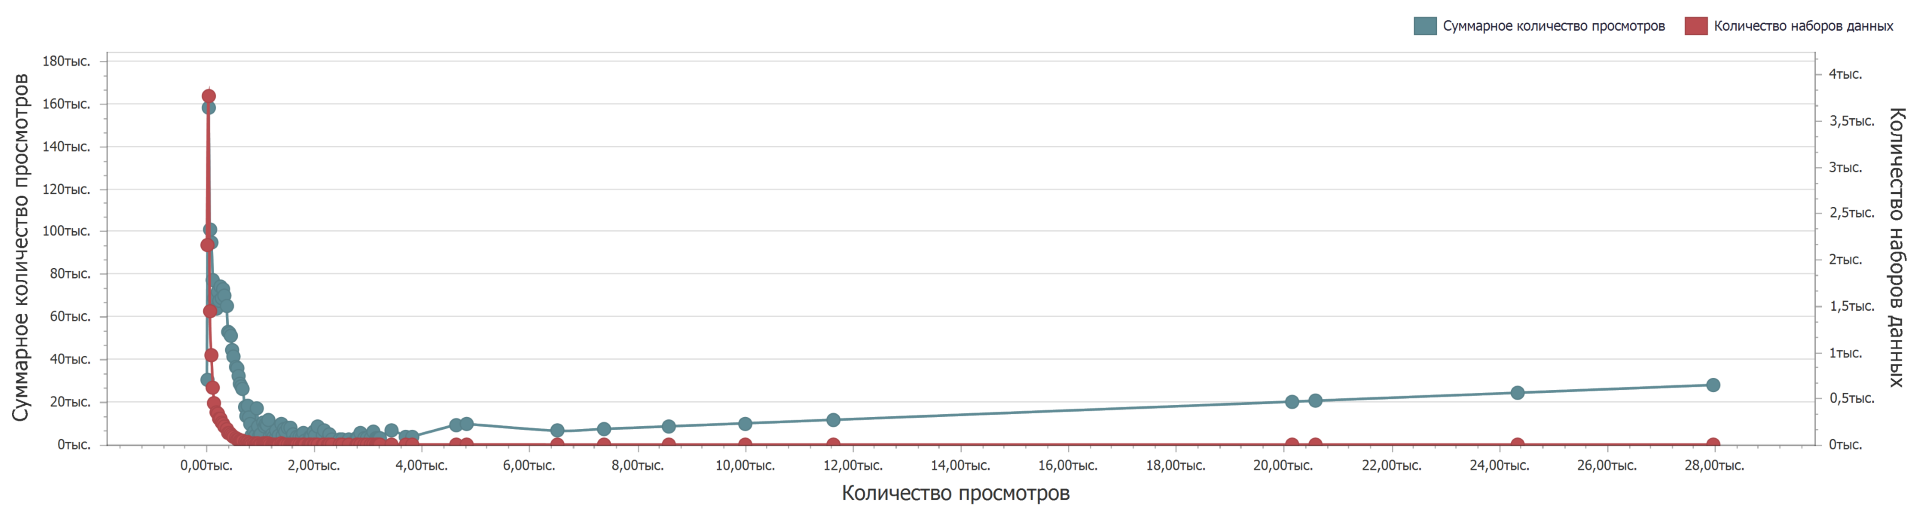 Distribution of views of open data sets from the data.gov.ru portal